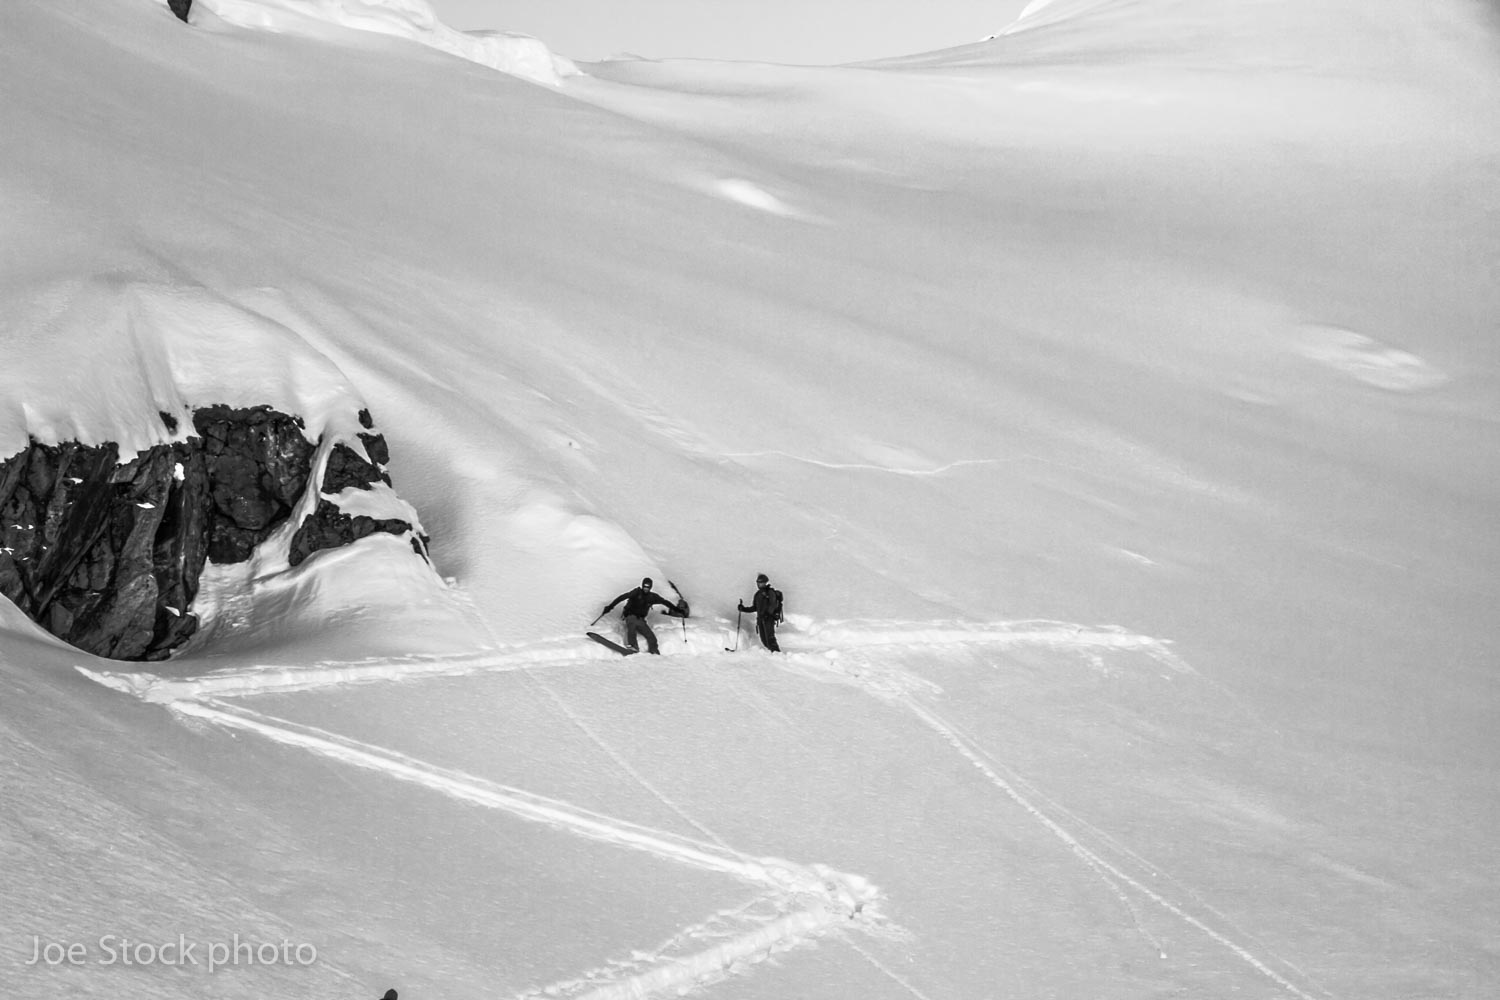 Eric Parsons and Jeff Conaway backing off in the Talkeetna Mountains, Alaska.